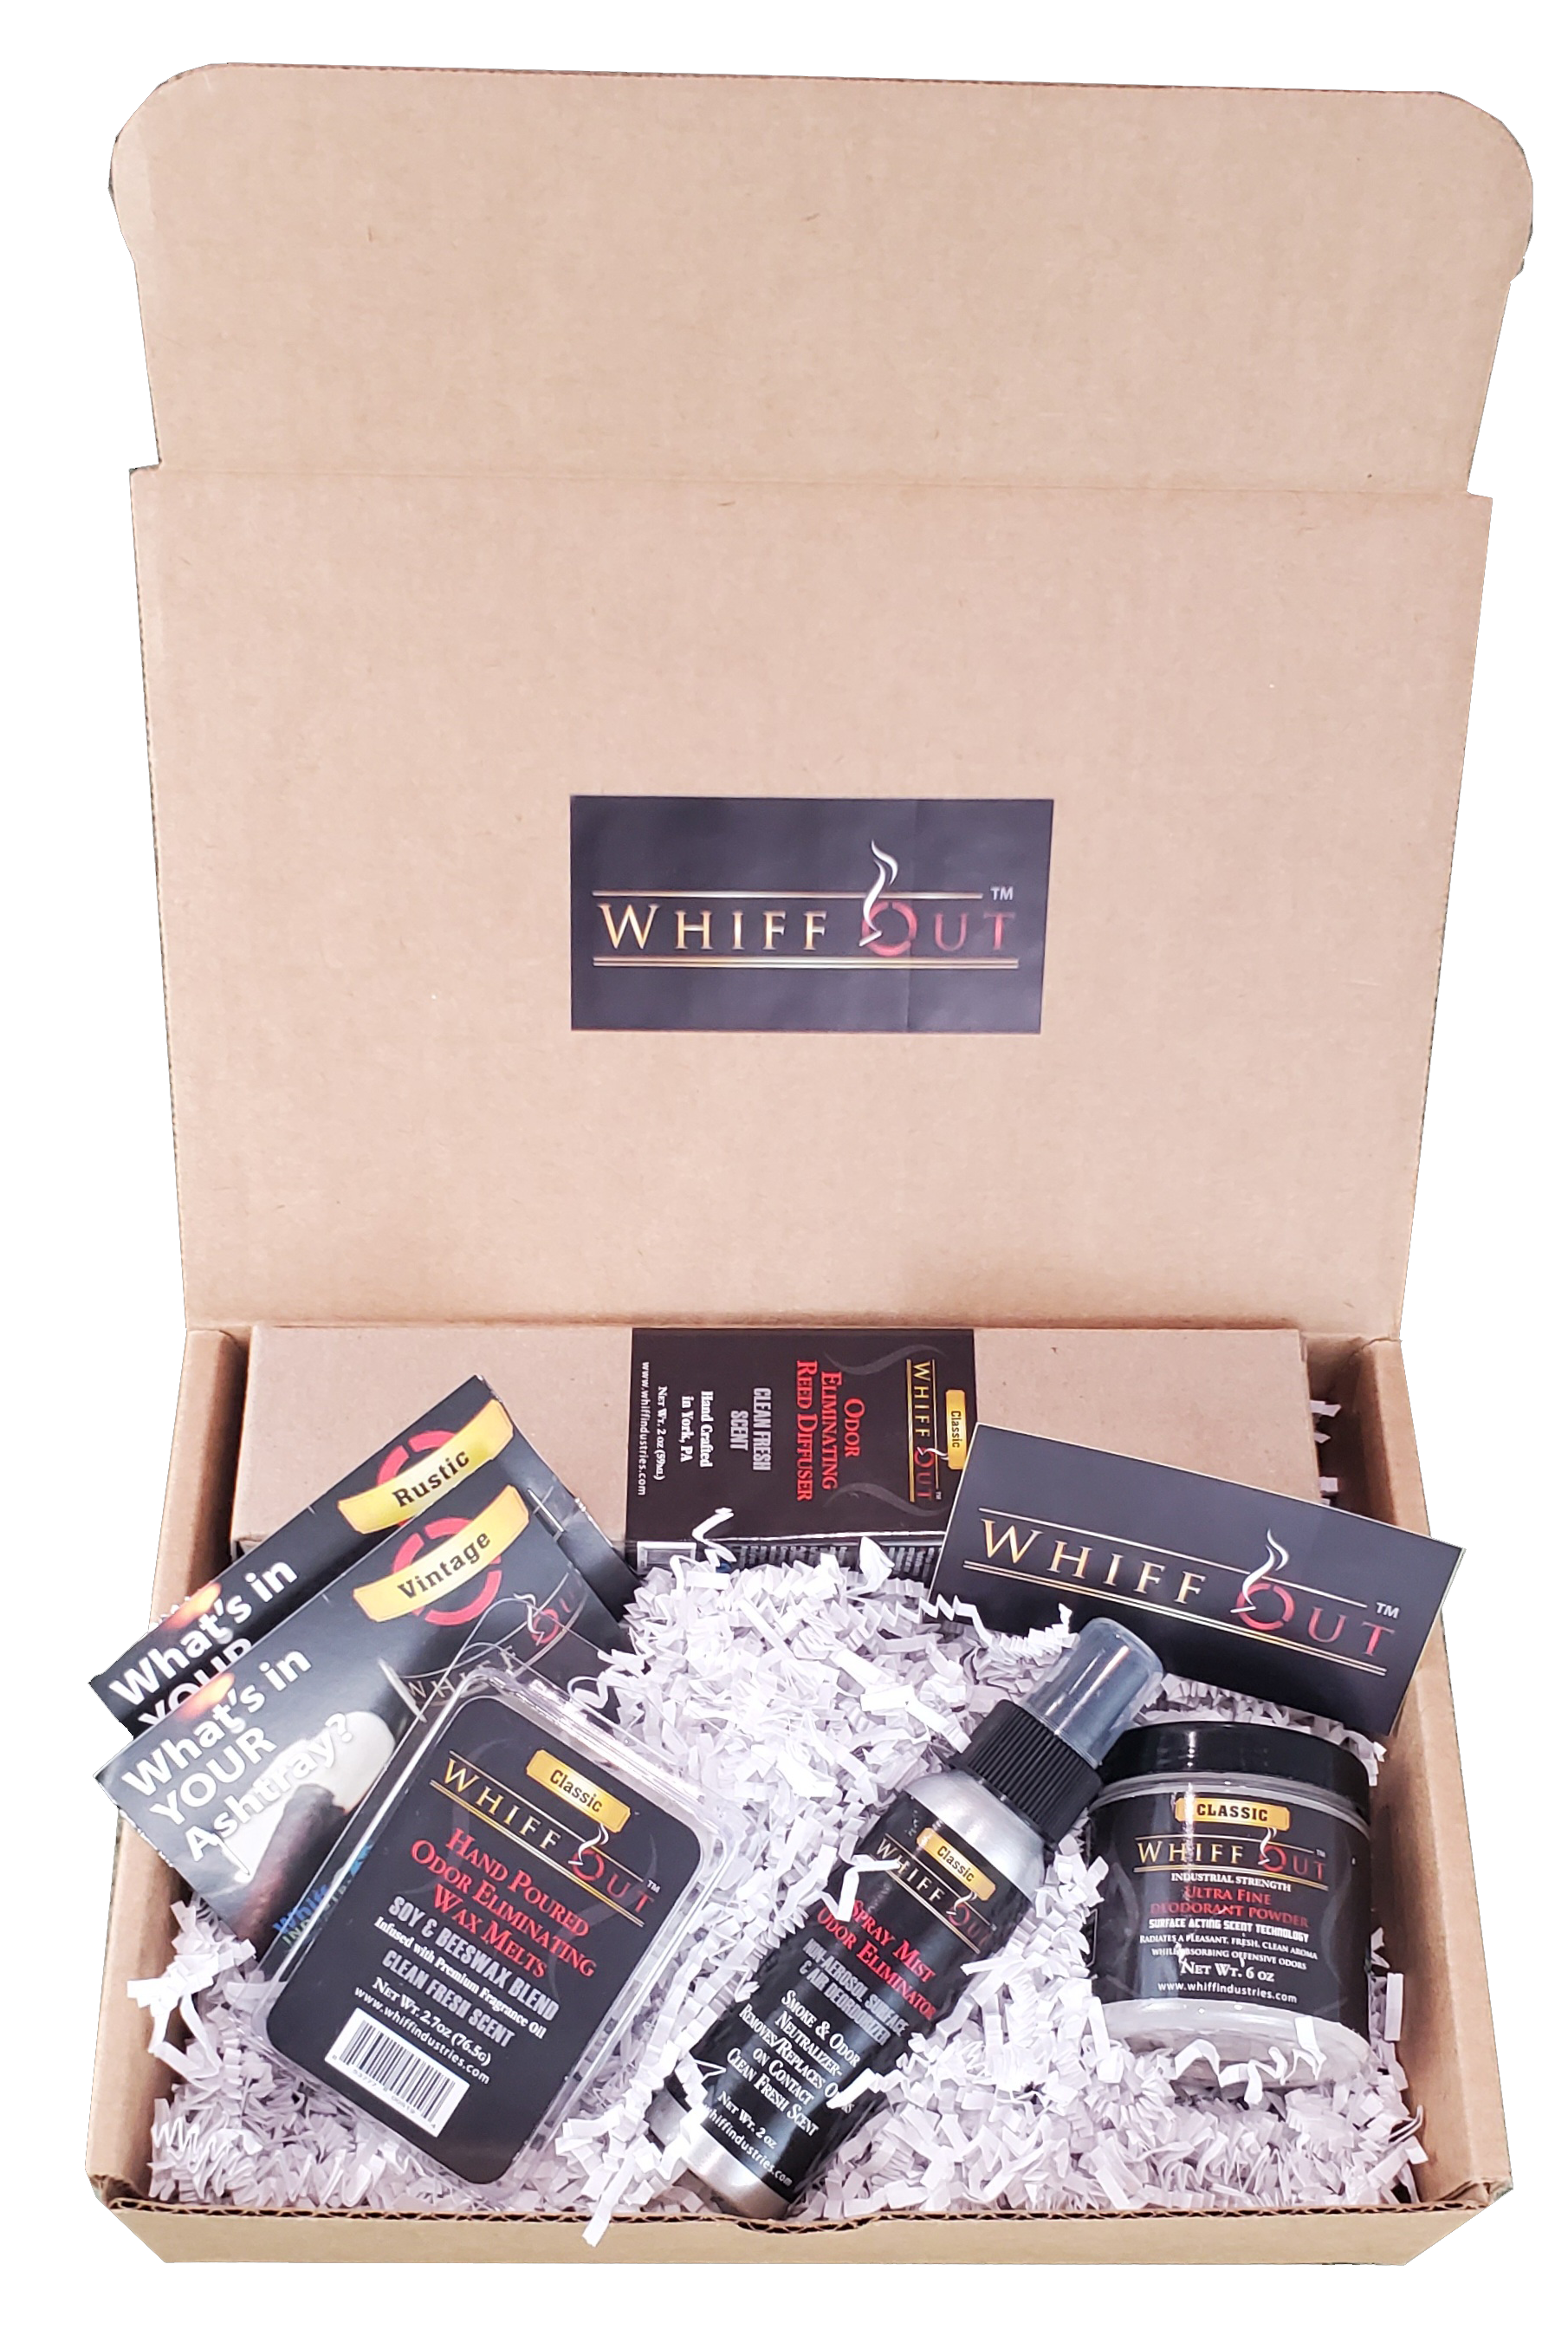 WHIFF OUT TOTAL ODOR NEUTRALIZATION SYSTEM GIFT BUNDLE CLASSIC SCENT